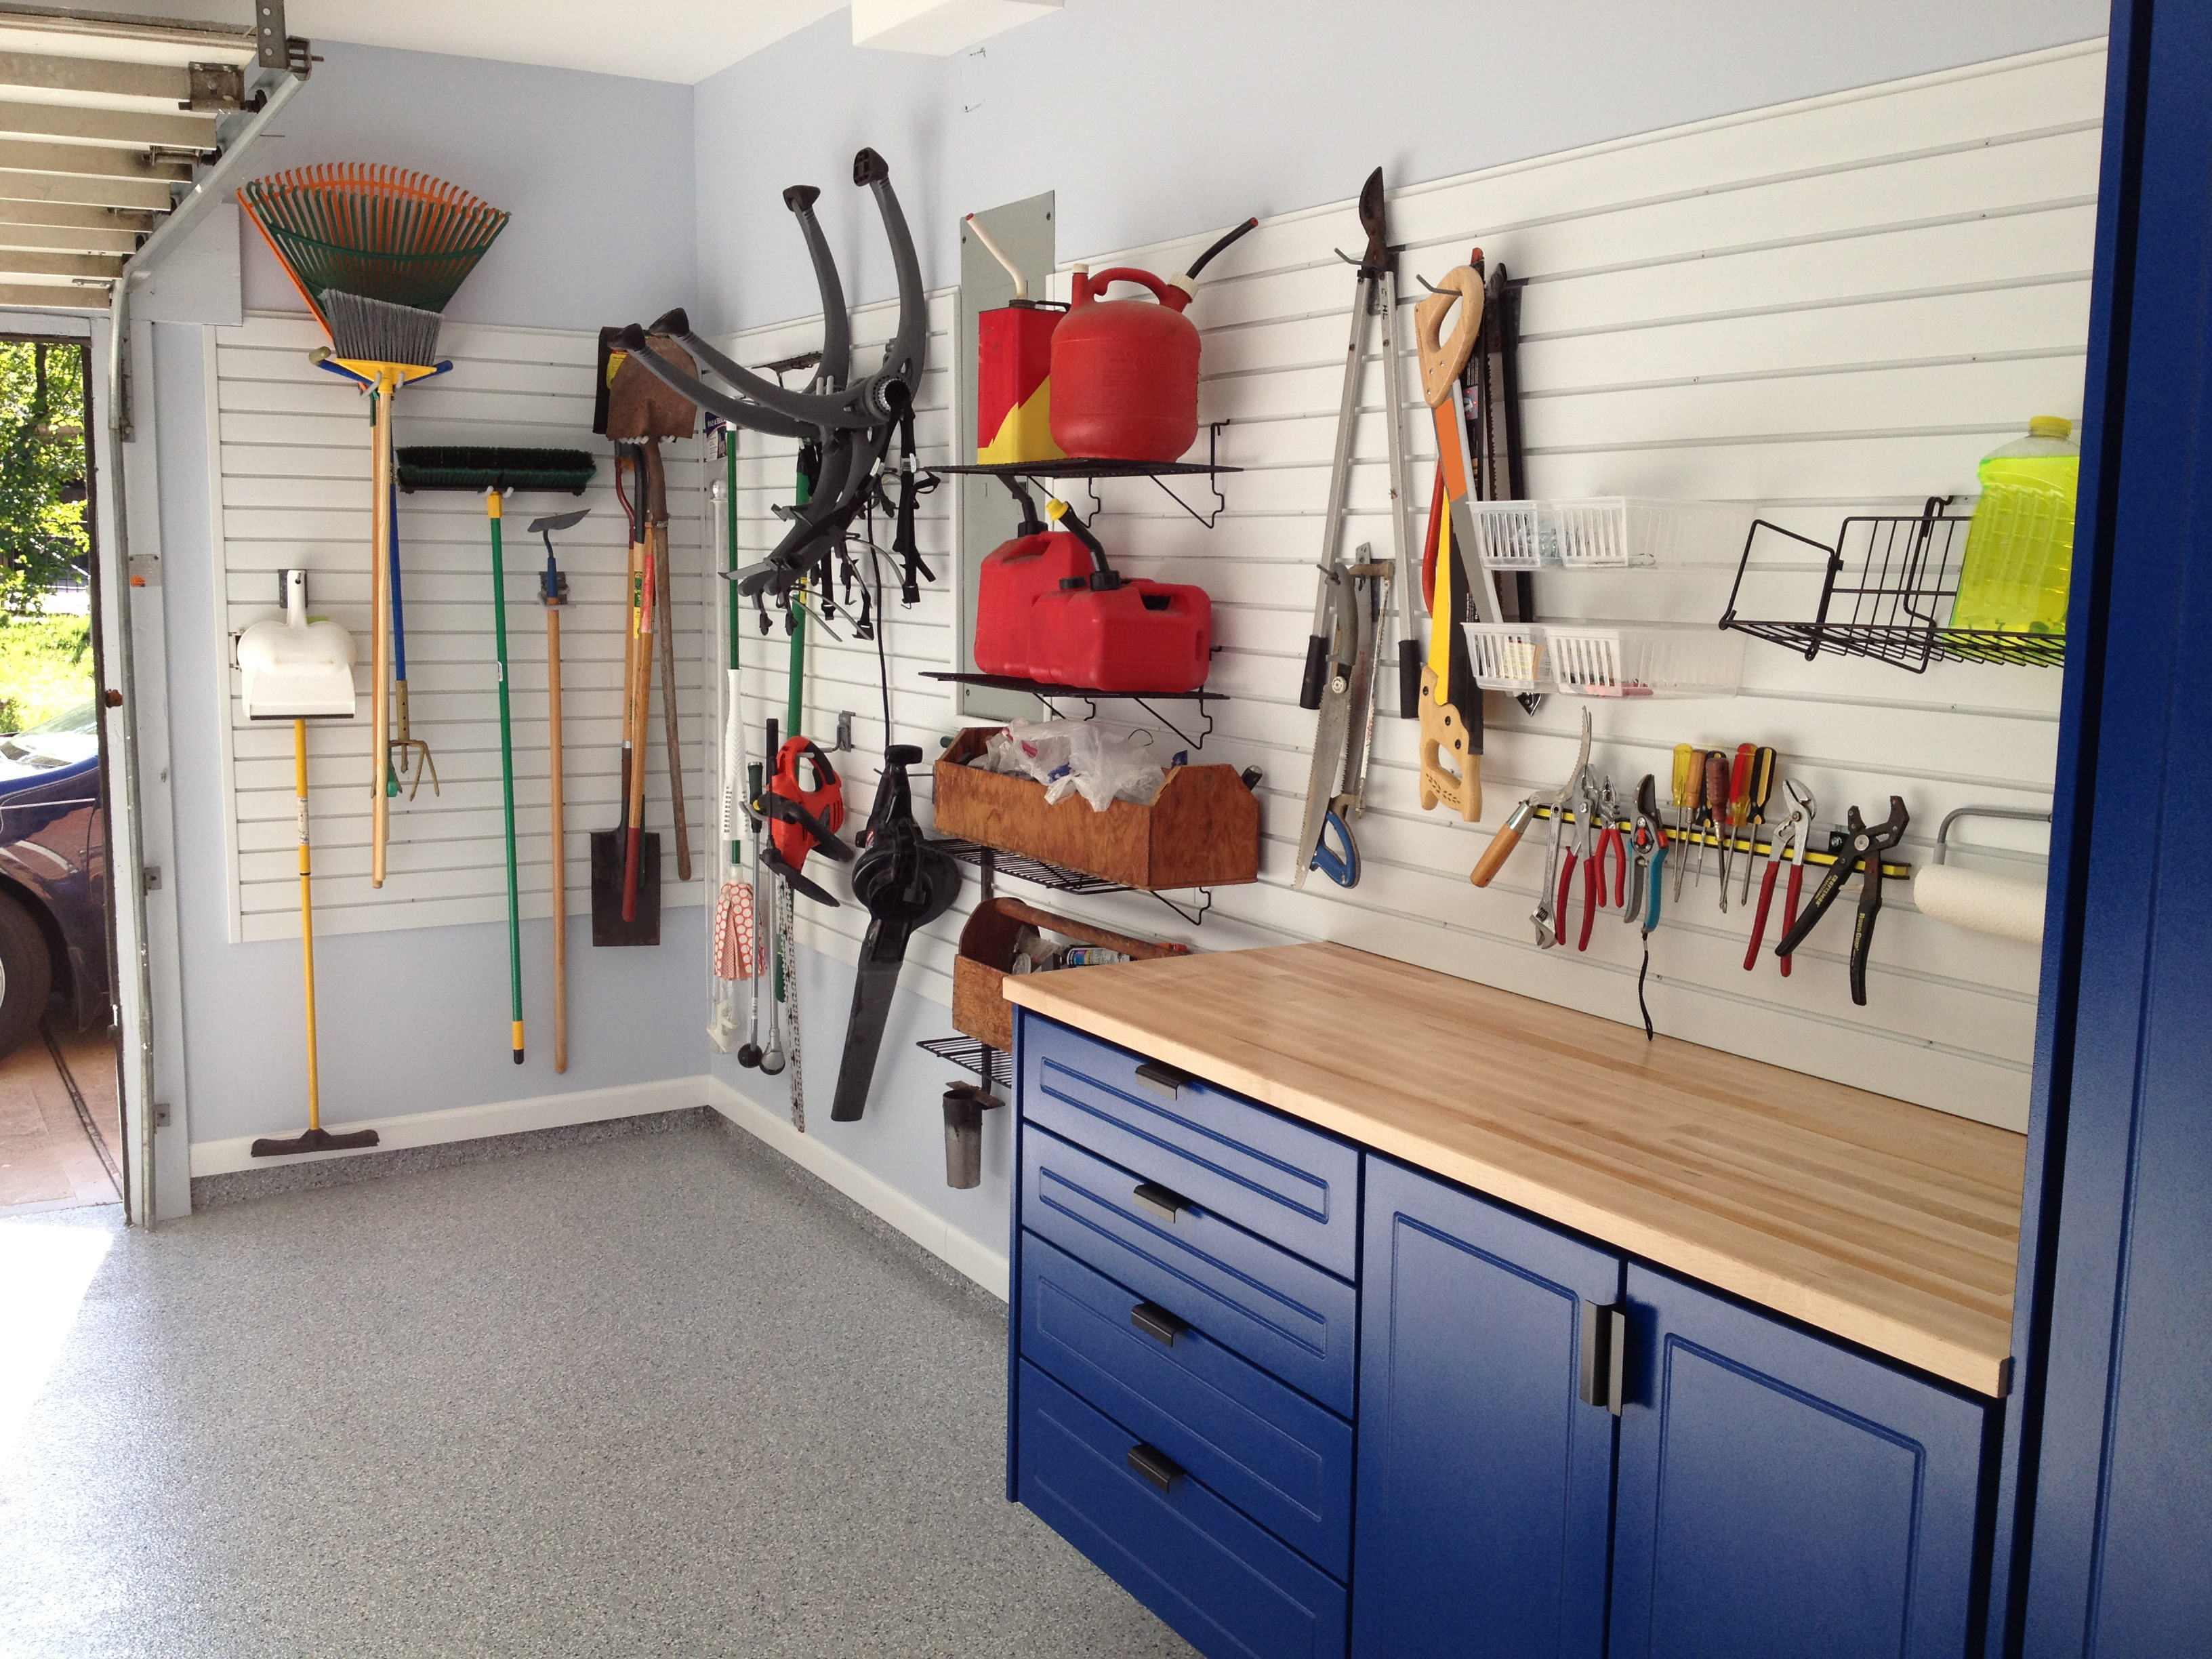 SlatWall Panels & SlatWall Accessory Tool Storage Paired With Powder Coated Blue Garage Cabinets